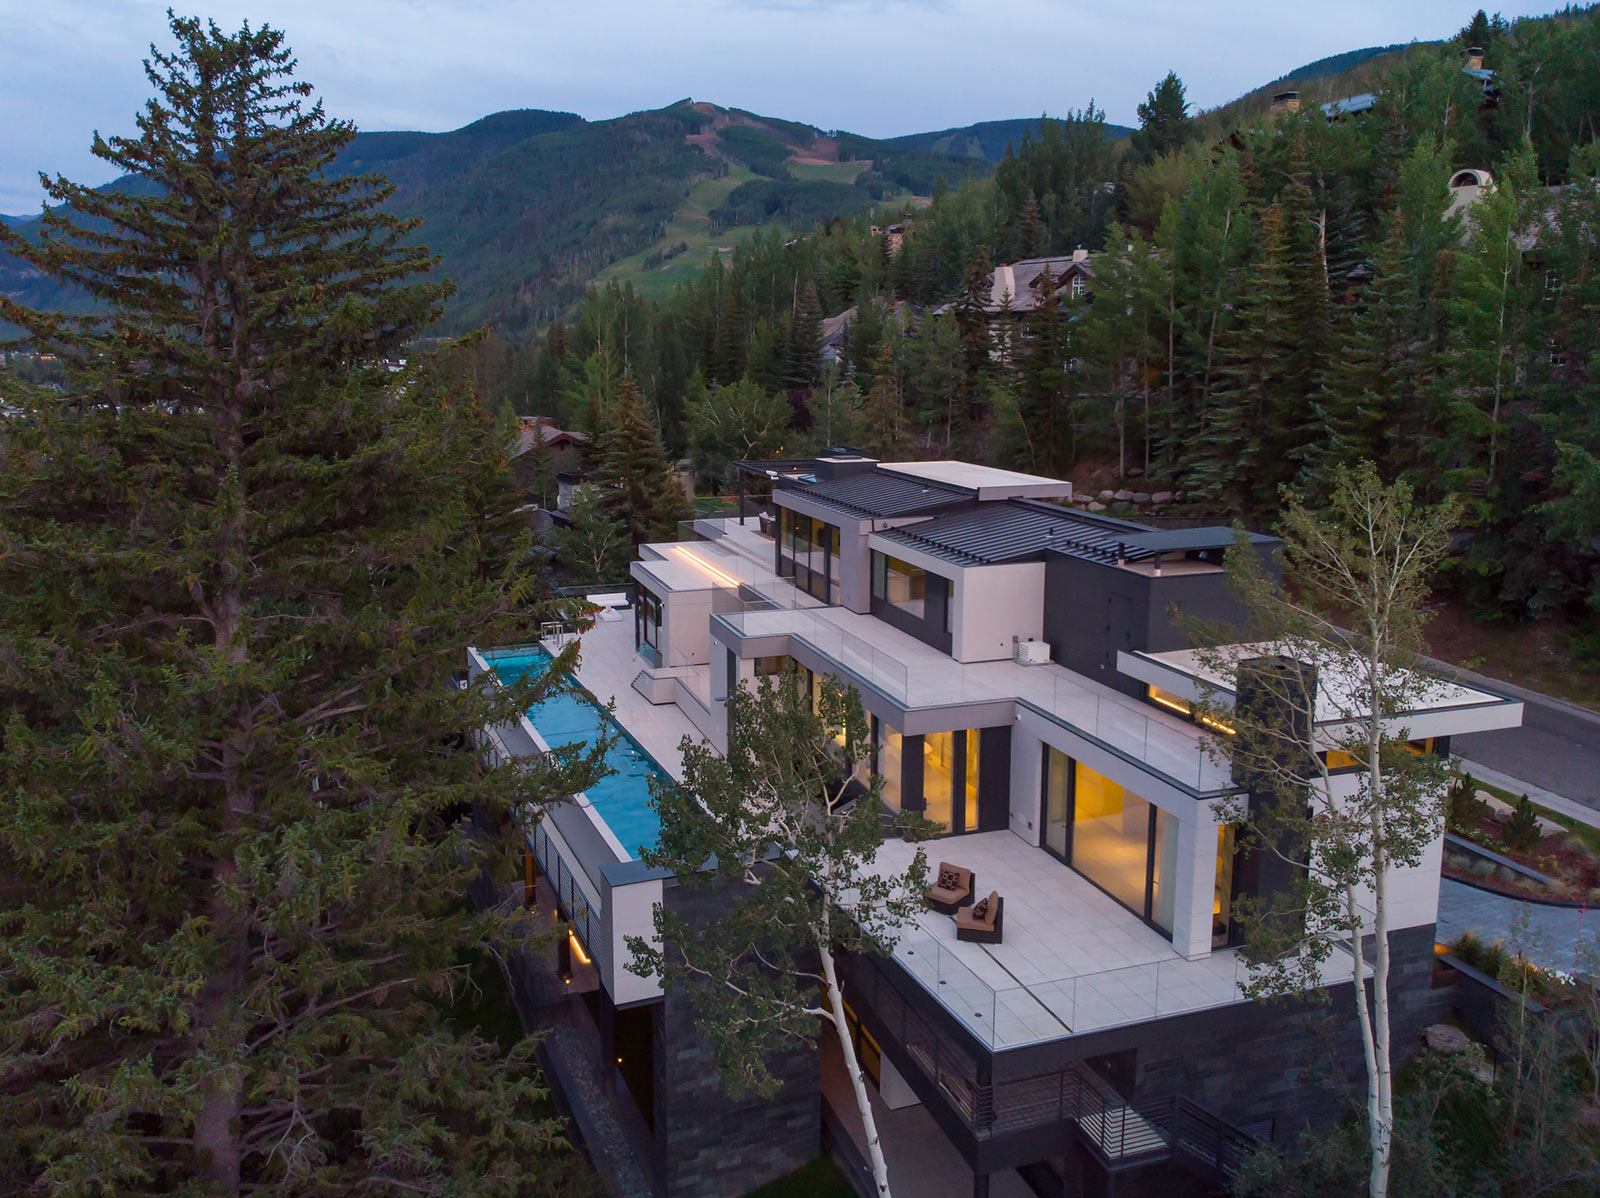 165 FOREST ROAD VAIL COLORADO MOUNTAIN REAR AERIAL SWIMMING POOL EXPANSIVE OUTDOOR LIVING SPACE